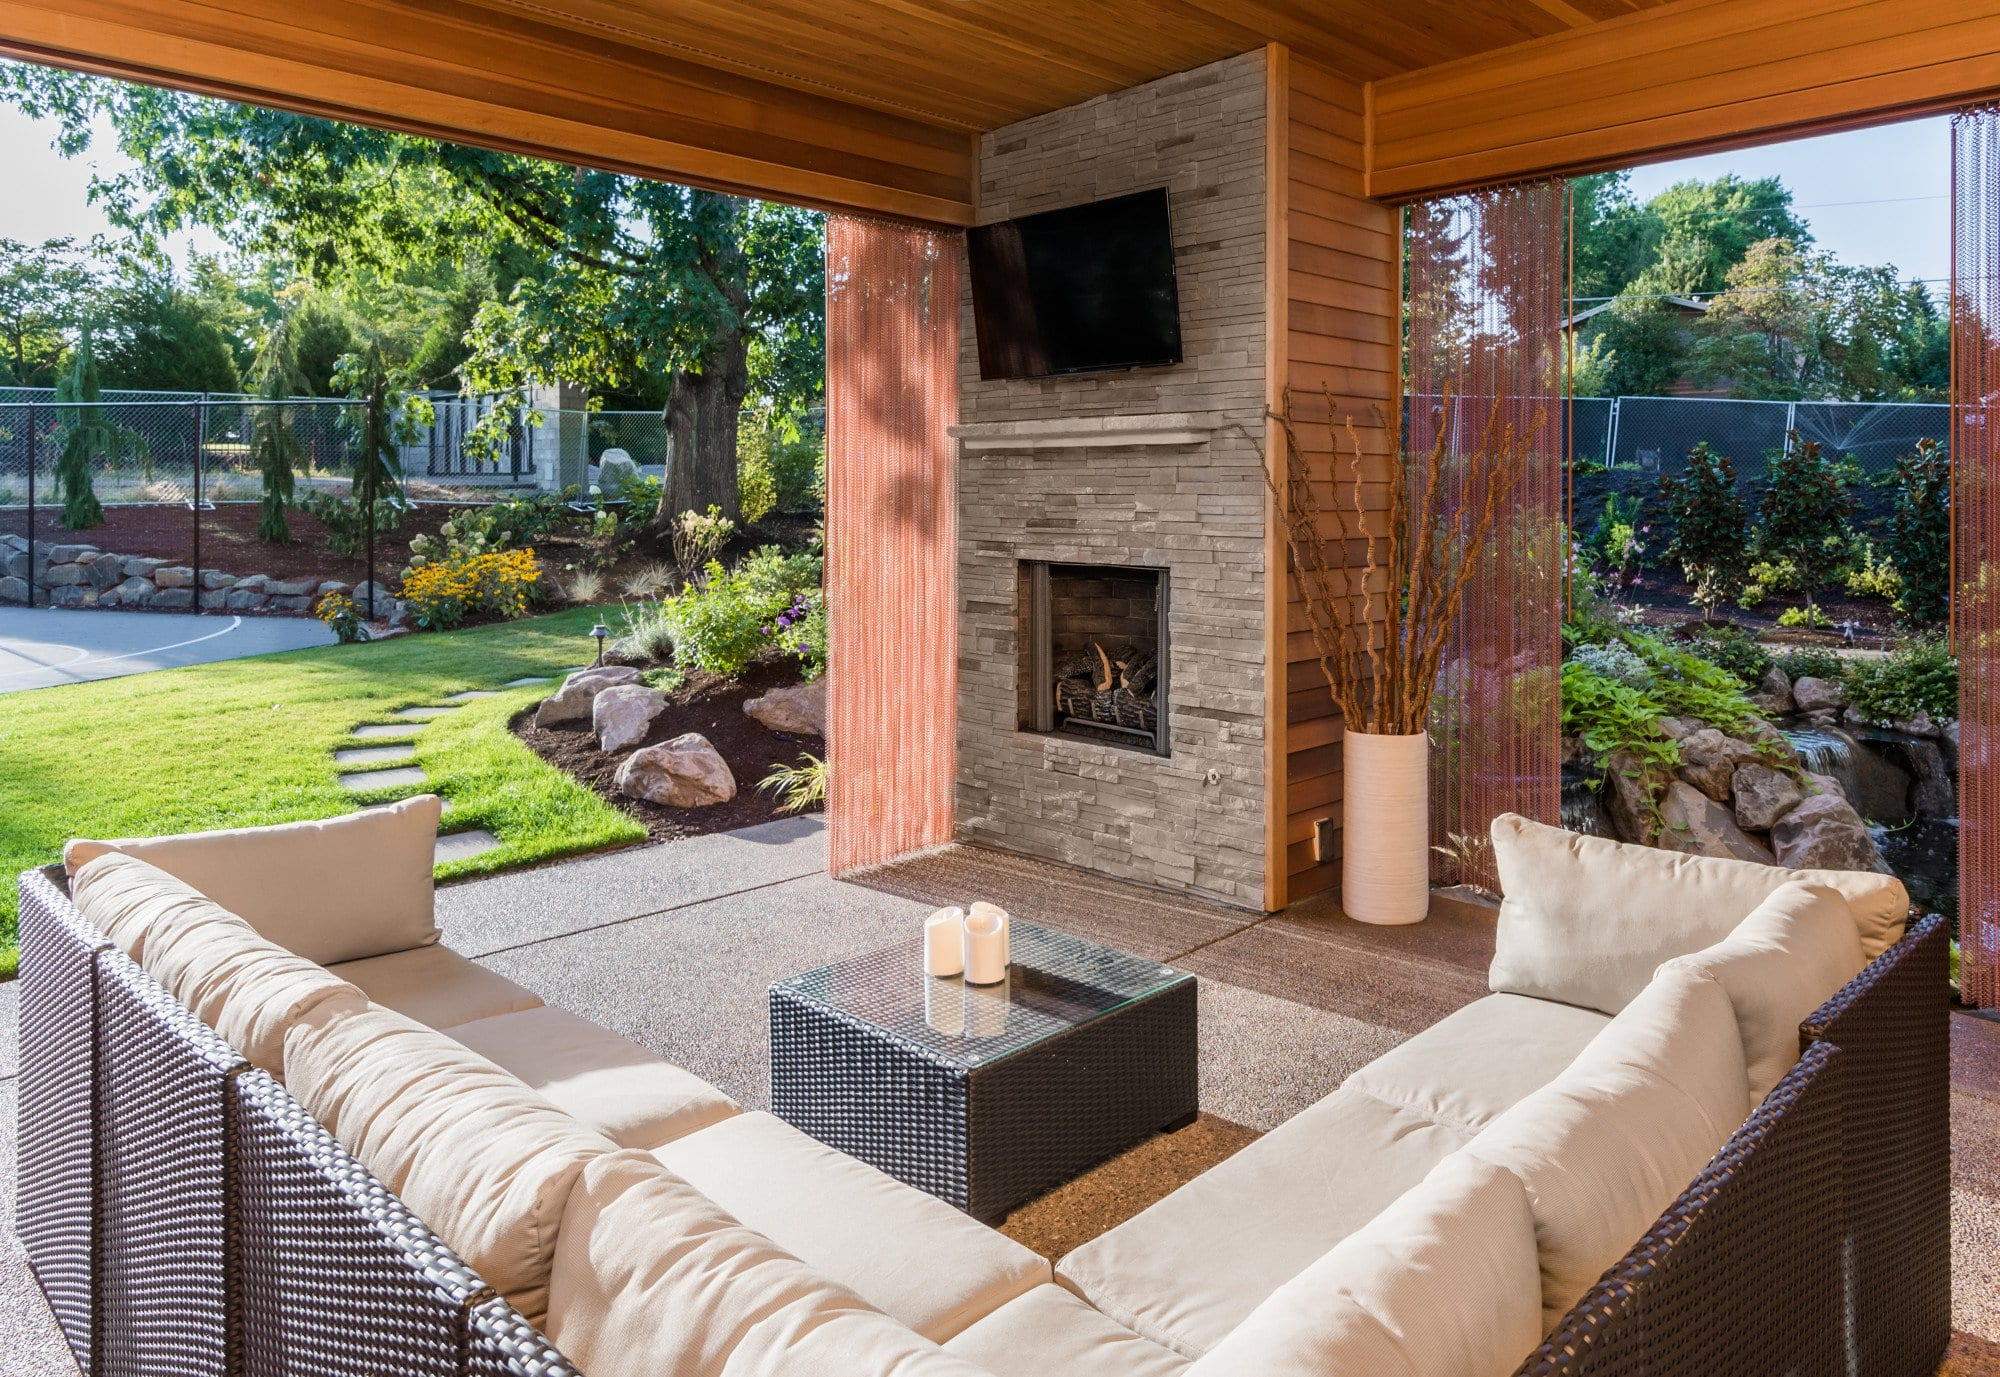 Transform Your Backyard Living Space 7 Outdoor Patio Ideas You Ll Love Your Great Outdoors Katy Tx